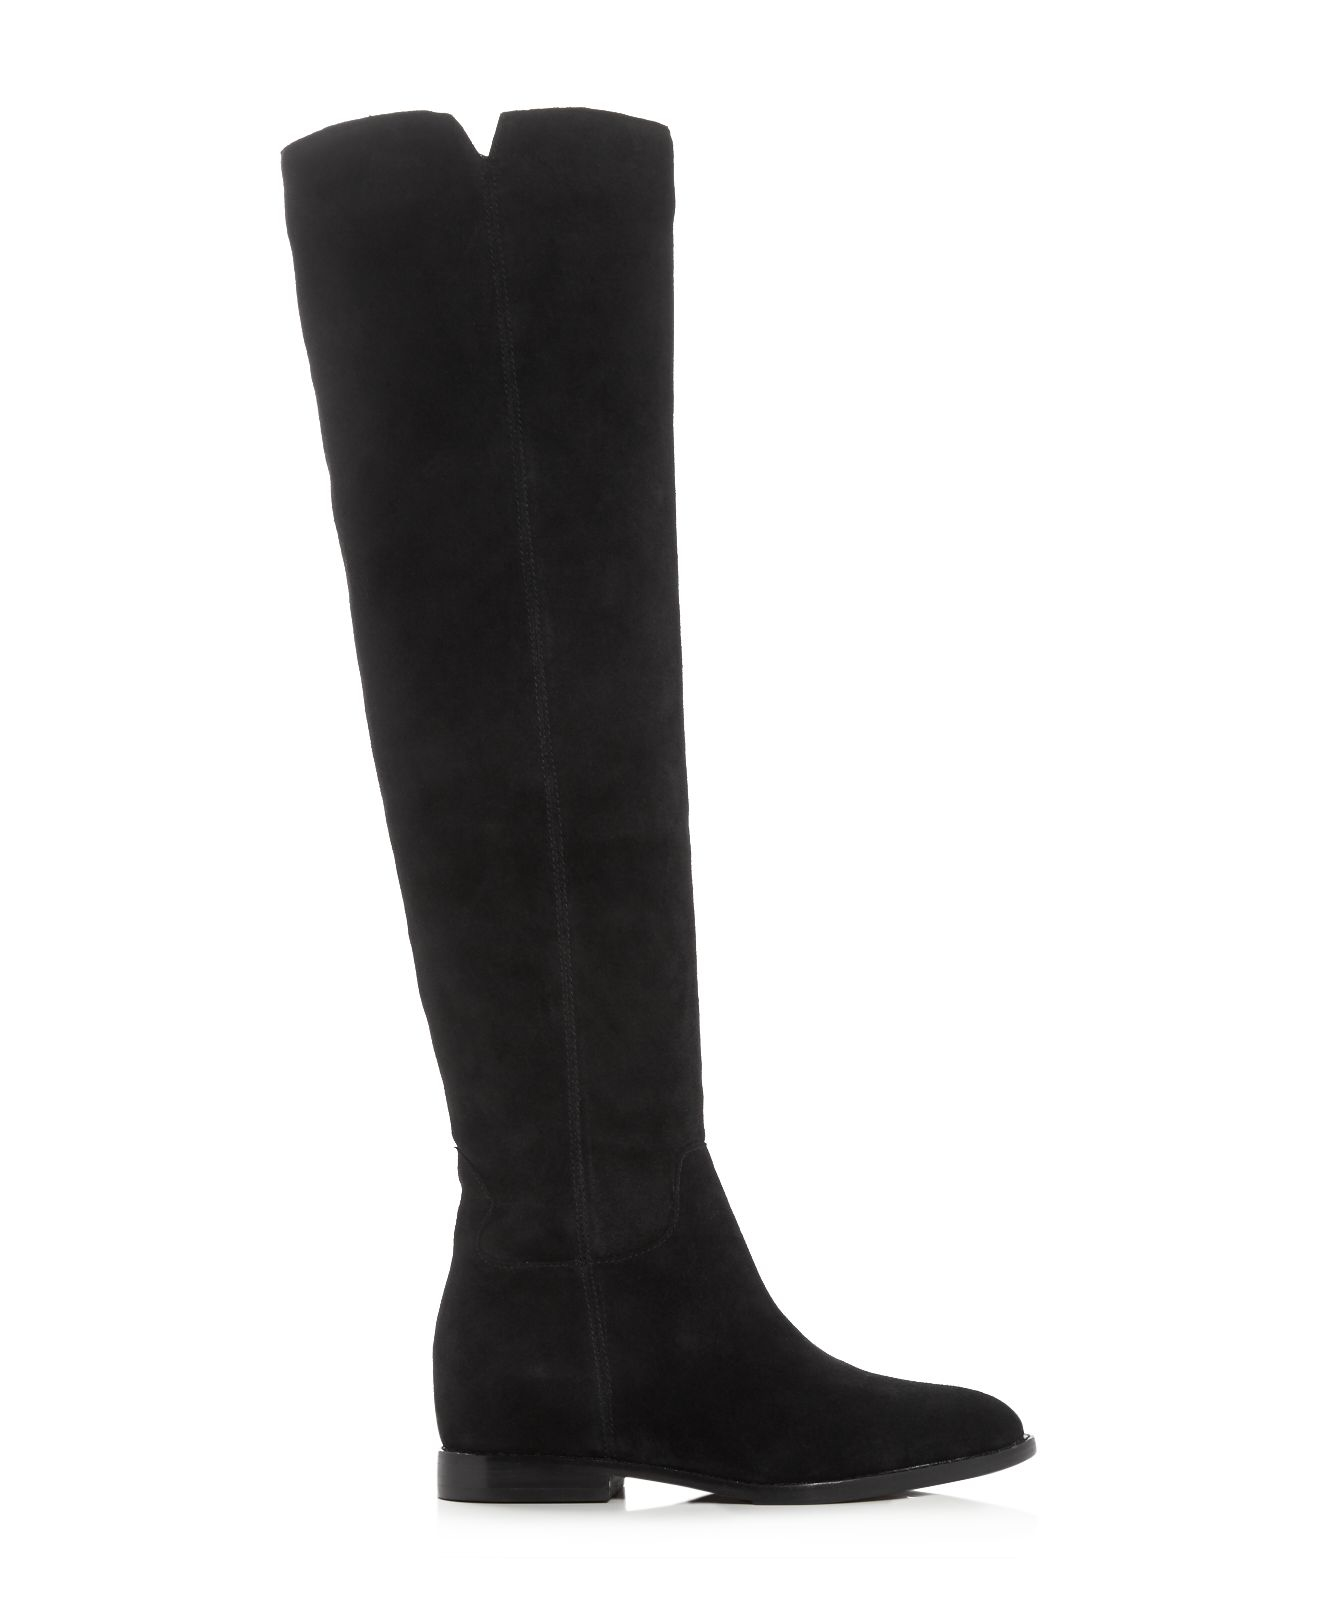 Ash Suede Jess Over The Knee Boots in Black